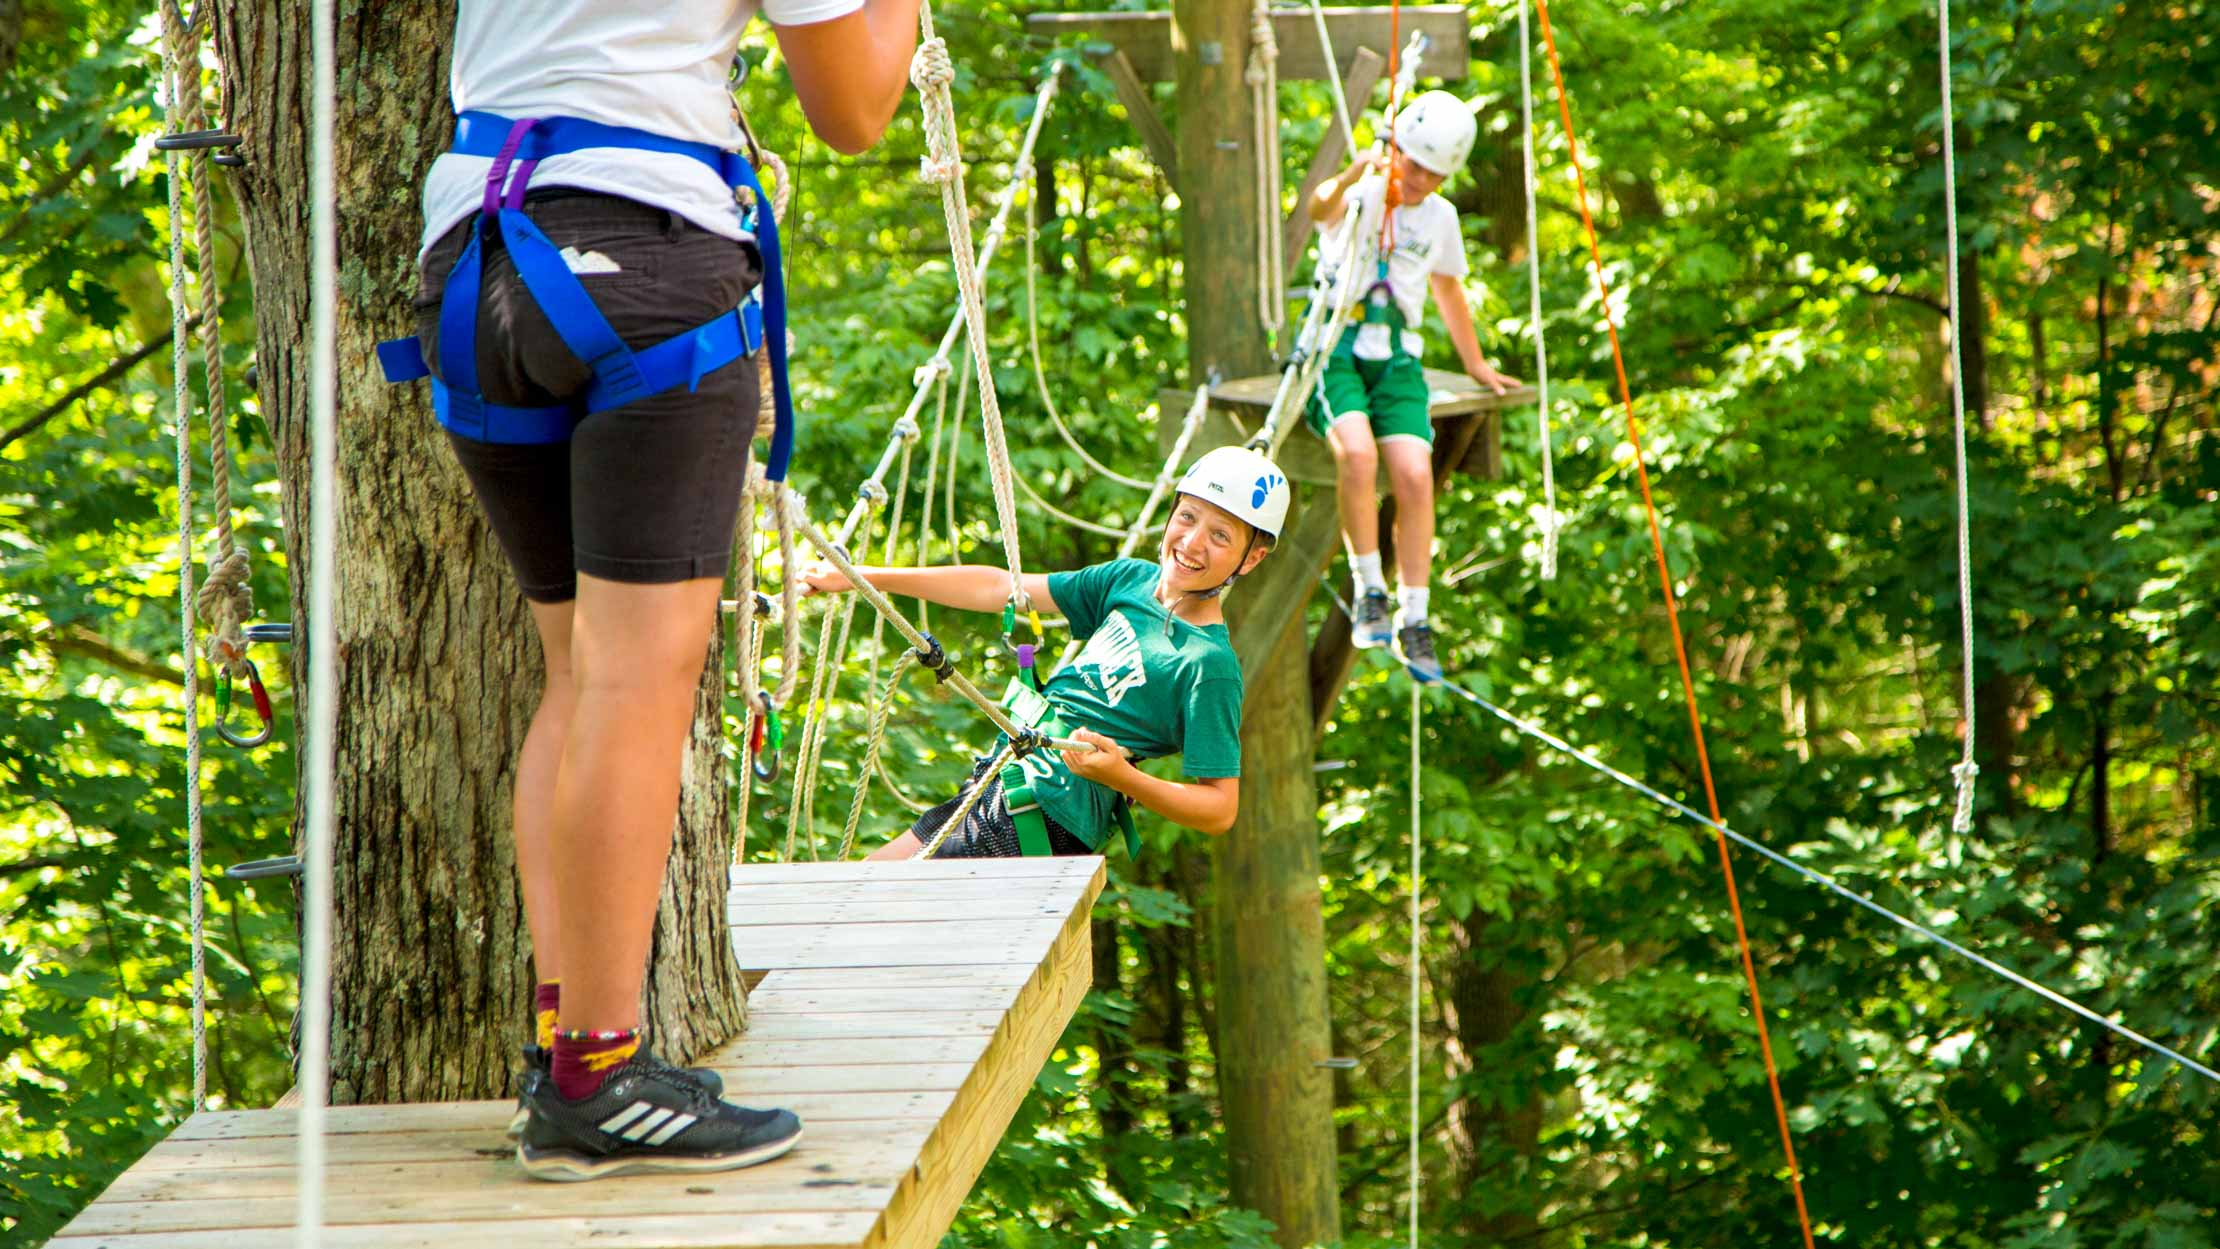 Smiling camper hangs on high ropes course